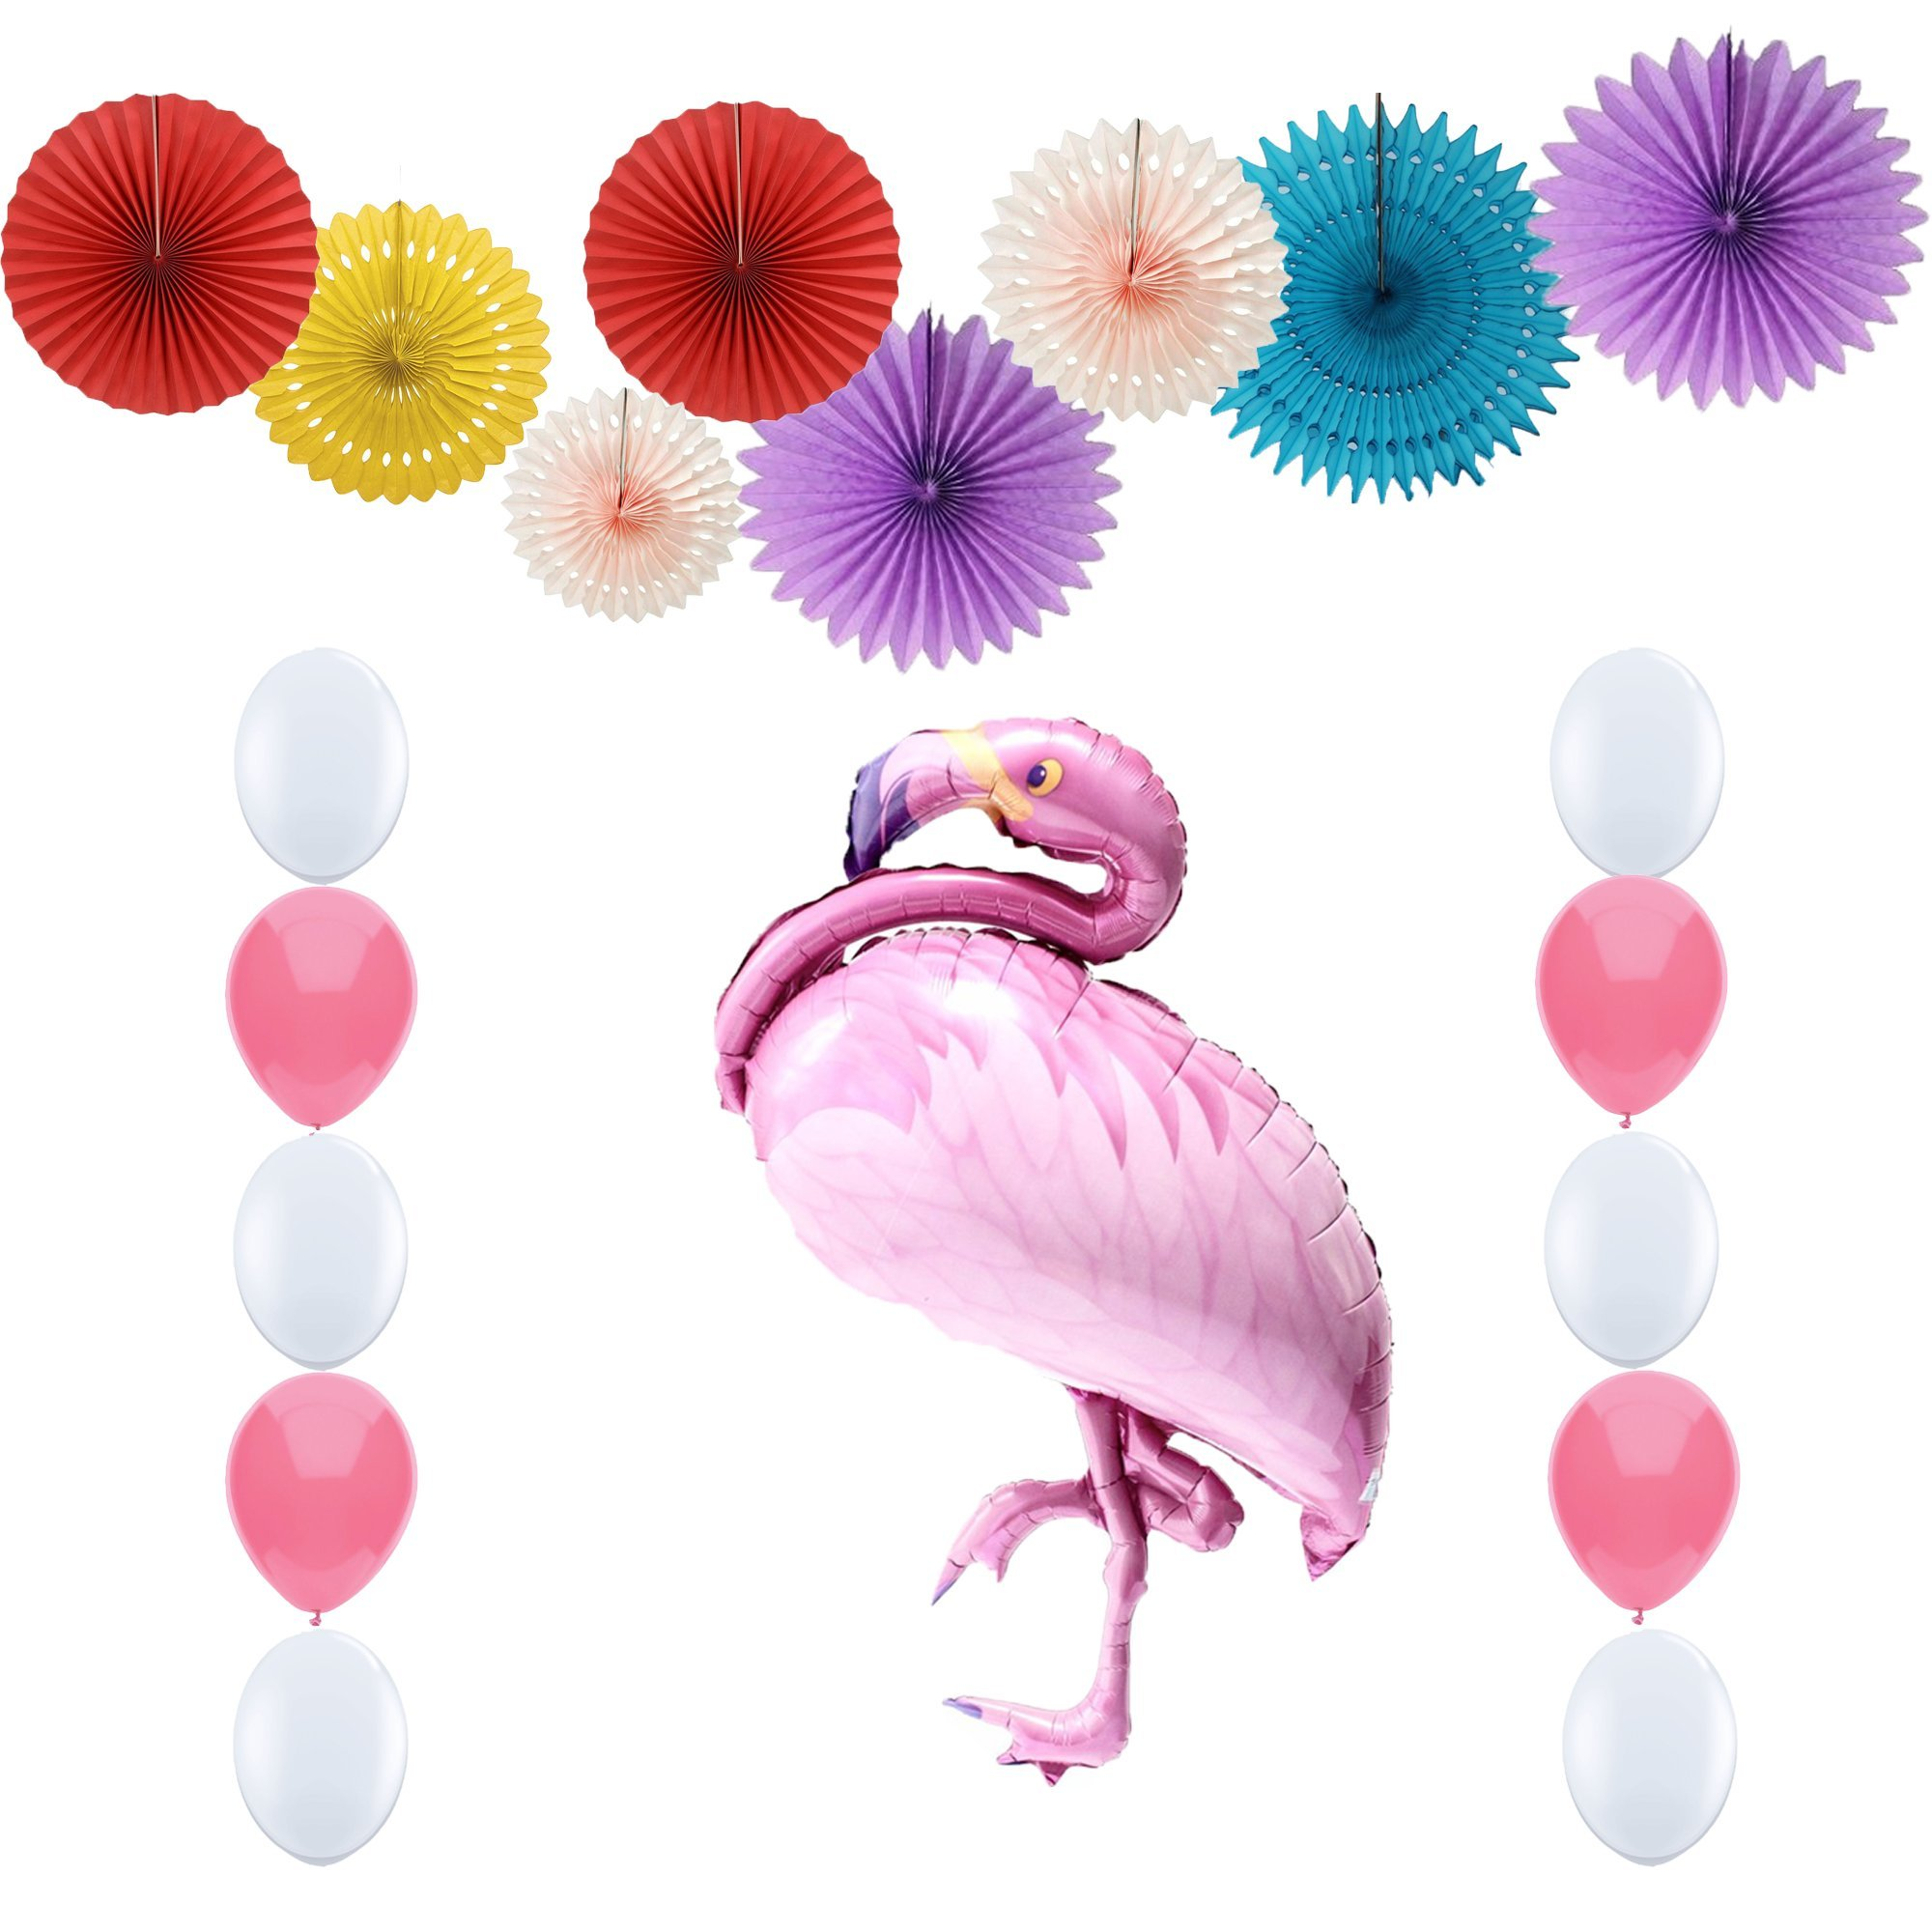 17pcs Giant Flamingo Decoration Handmade Colorful Paper Fan set for Party Flamingo Decor Bridal Baby Shower kids girlfriend